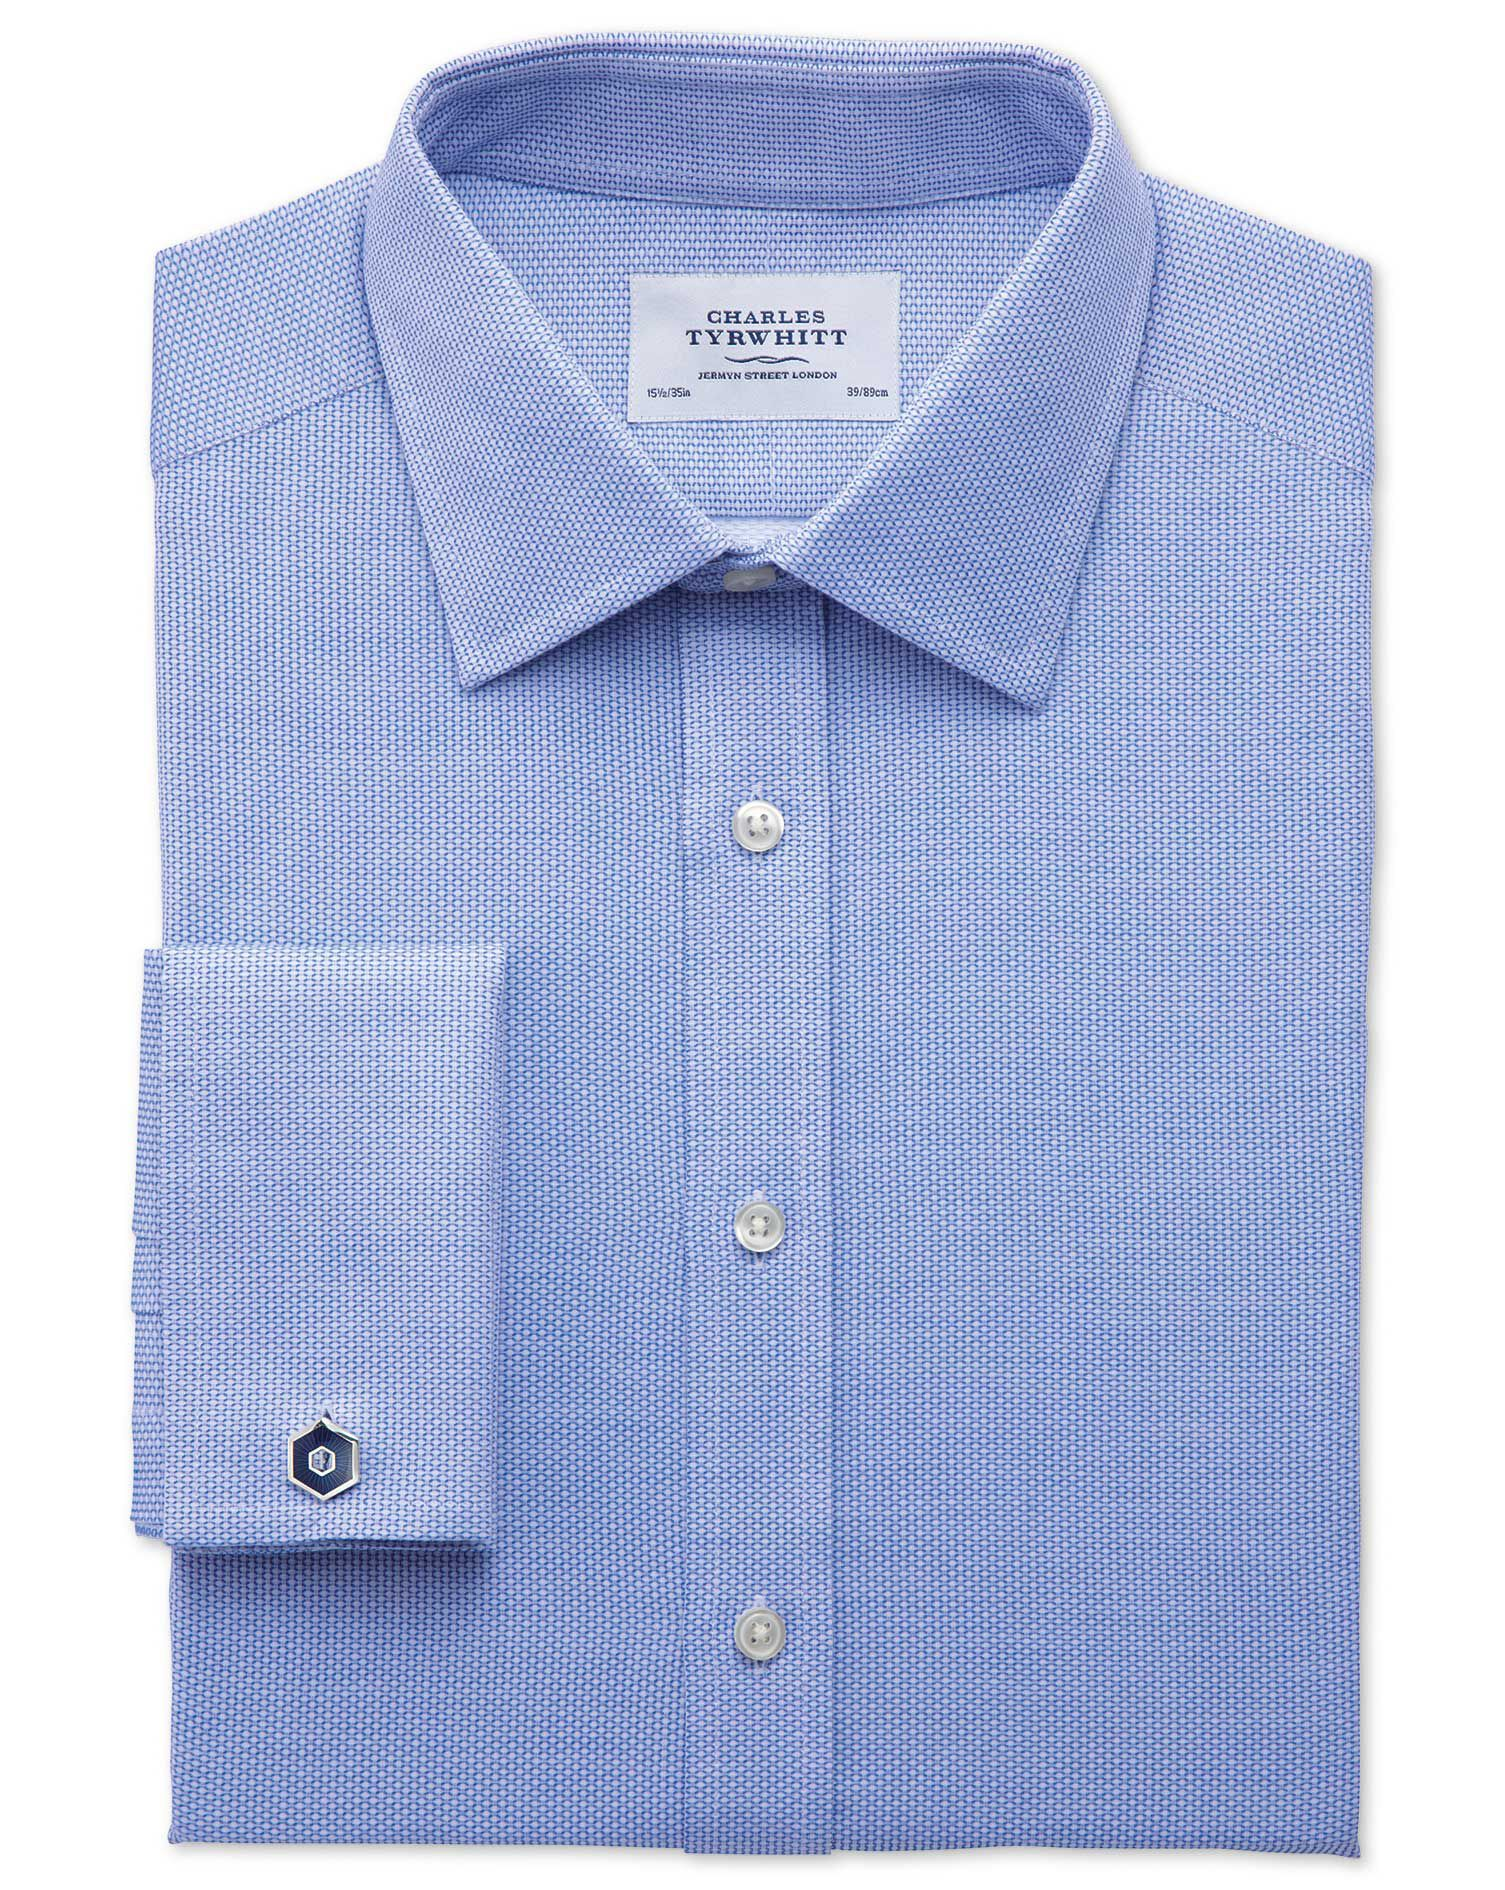 Slim Fit Egyptian Cotton Diamond Texture Mid Blue Formal Shirt Double Cuff Size 16/34 by Charles Tyr